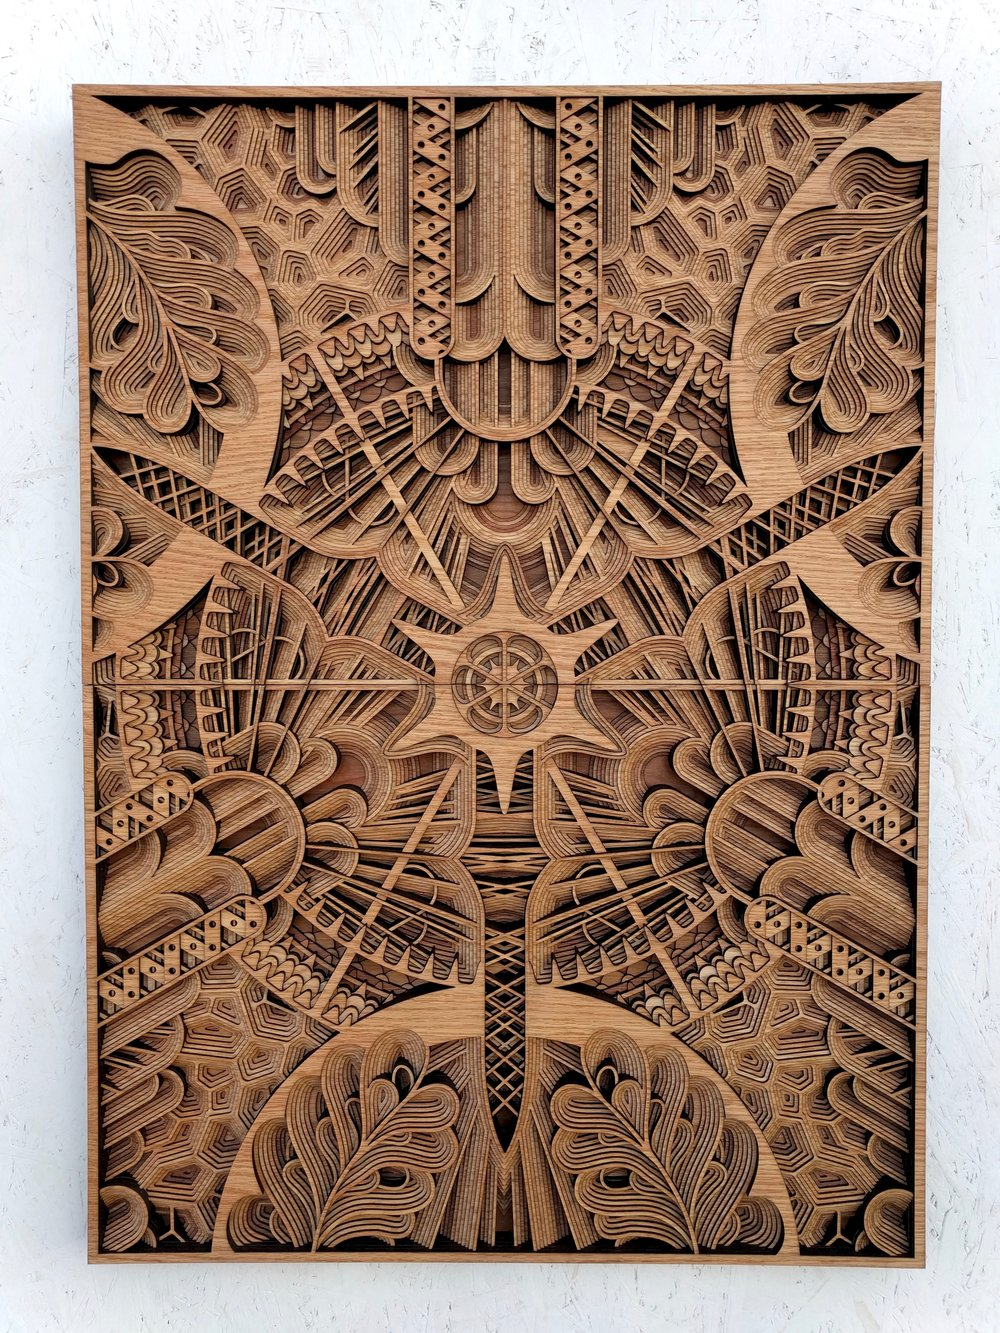 "AFTER HAECKEL 42"" x 31"" red oak plywood, 2016"